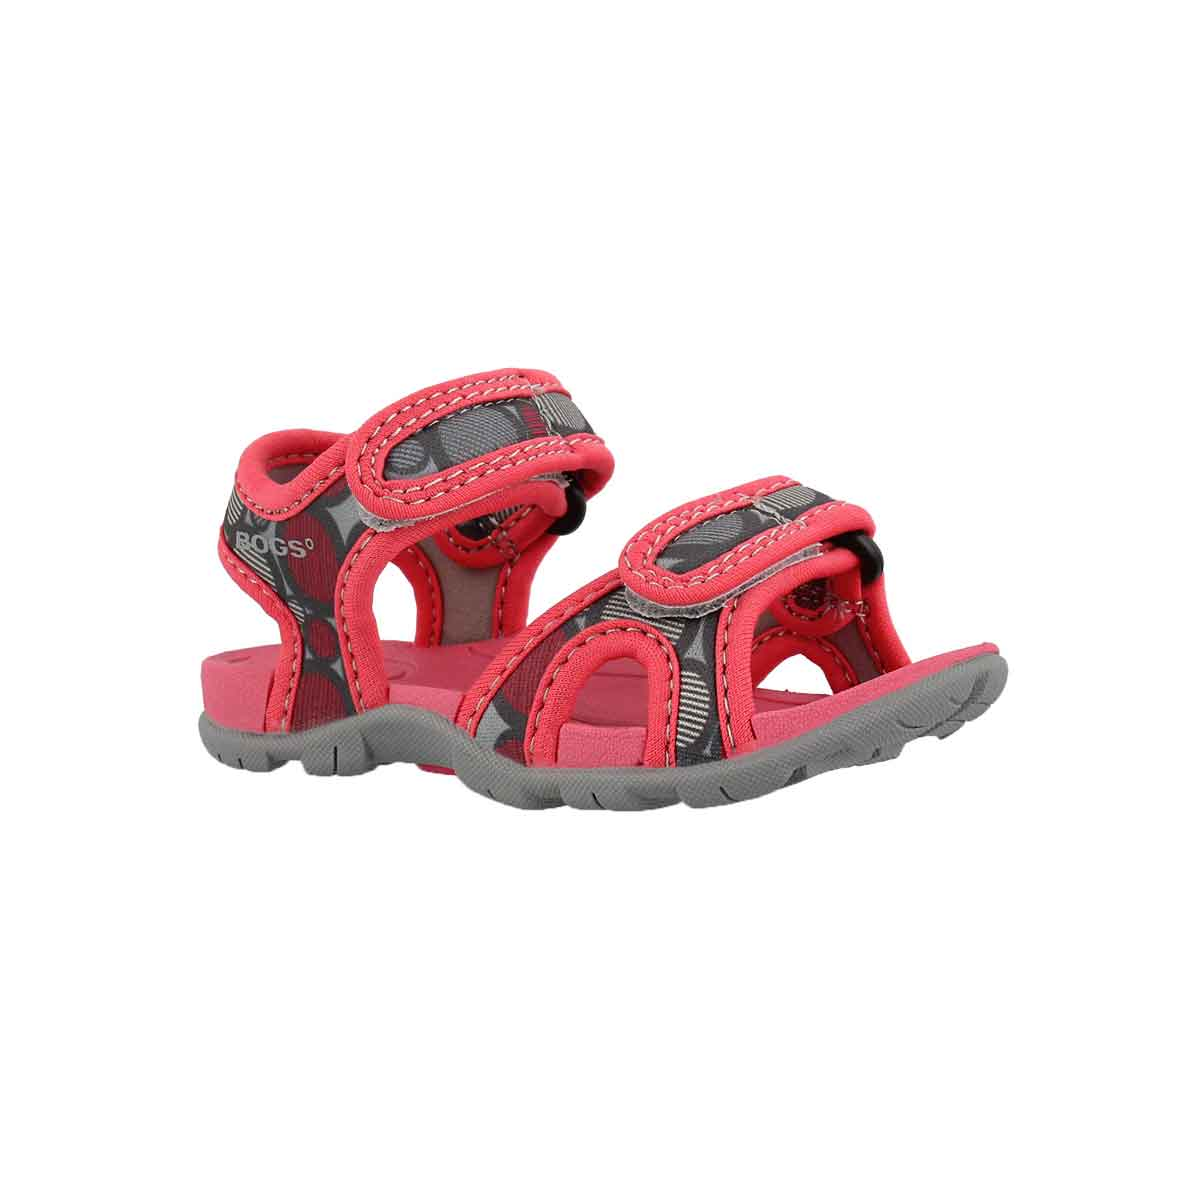 Infants' WHITEFISH MULTIDOT rse waterproof sandals